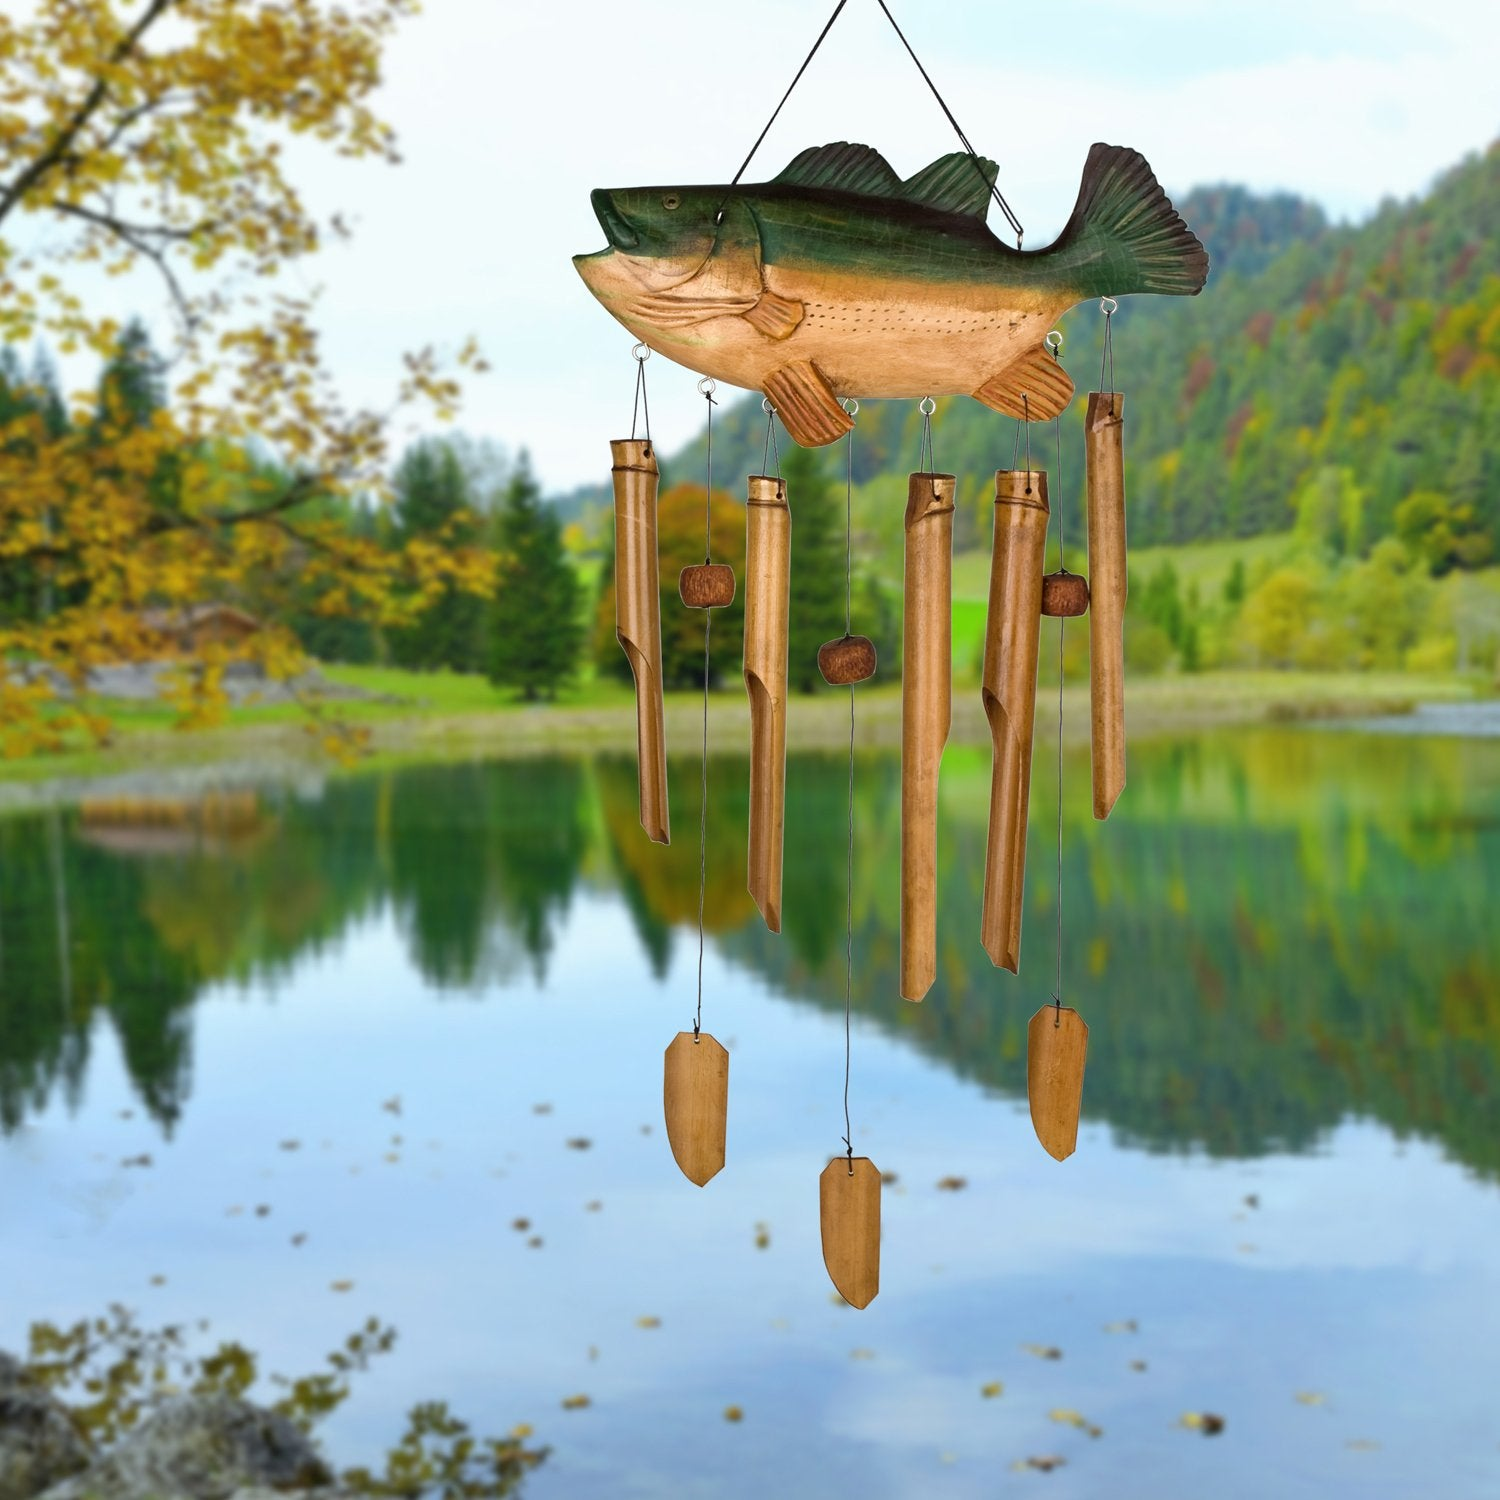 Animal Bamboo Chime - Bass Fish lifestyle image